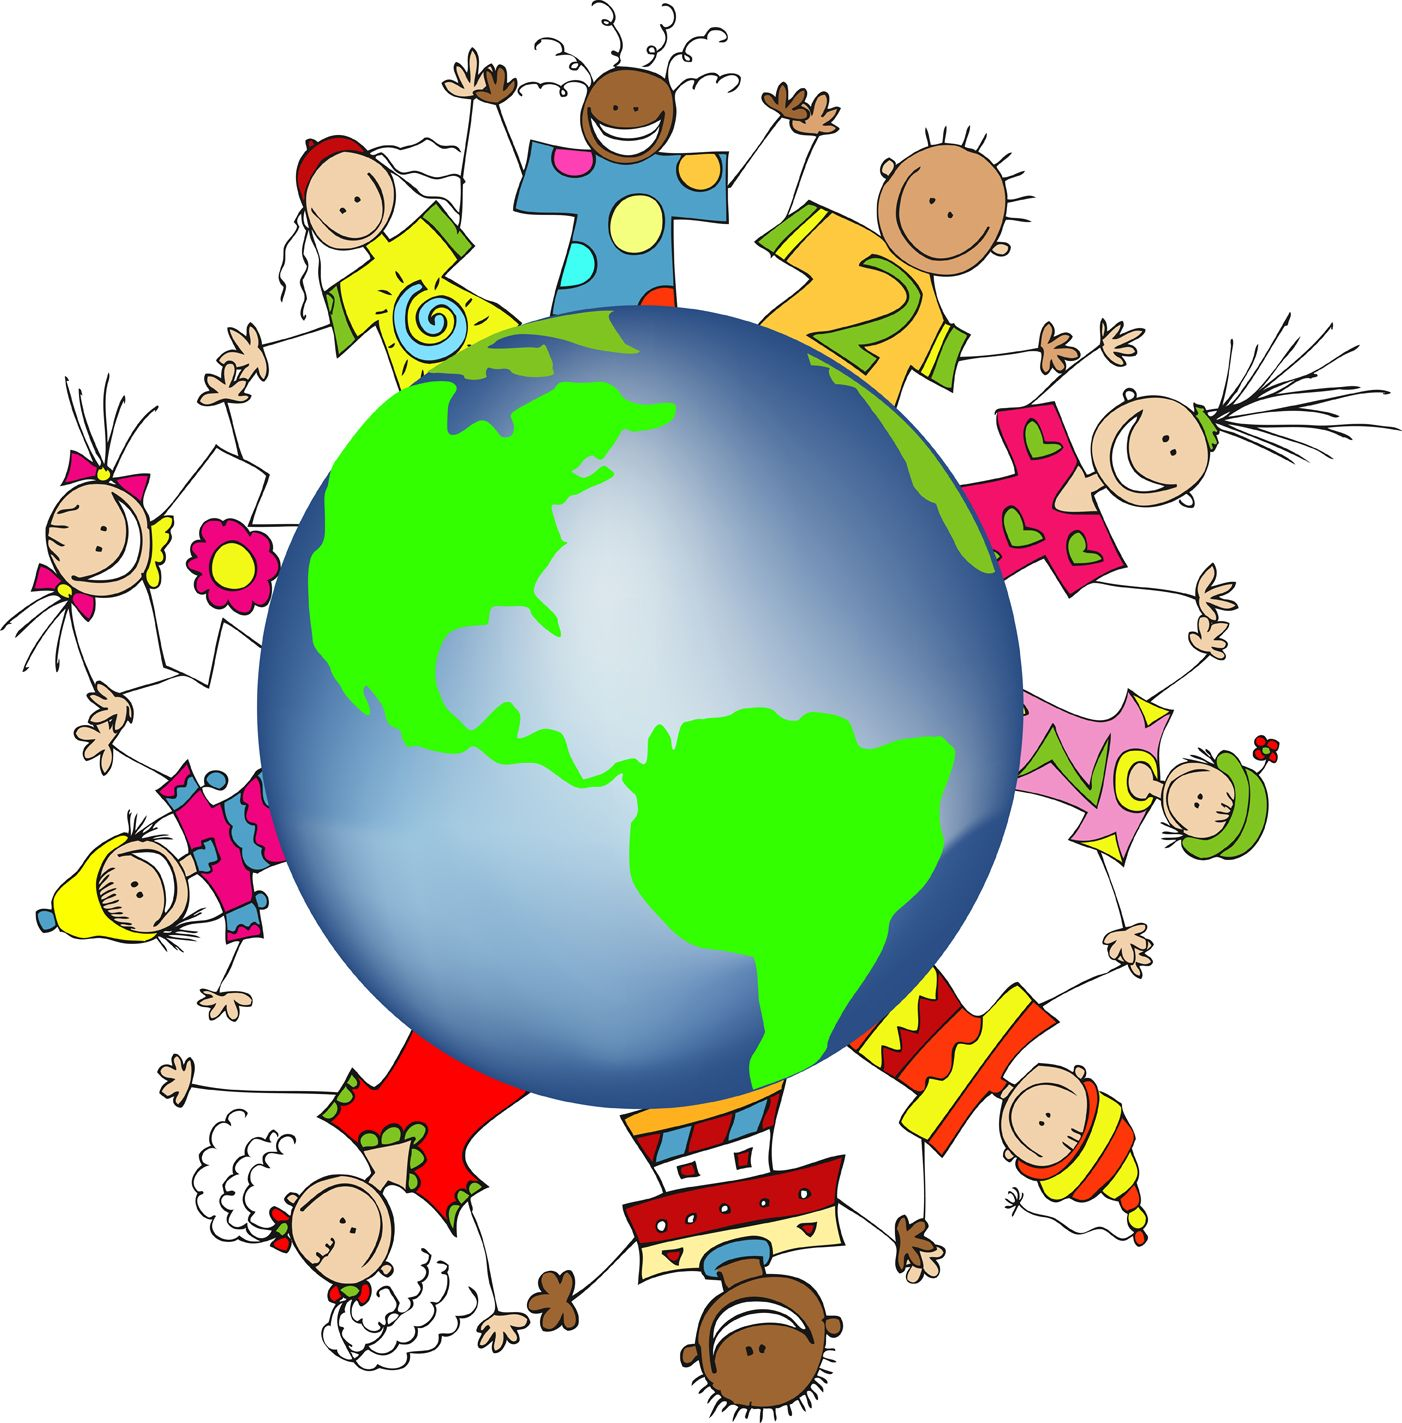 Kids World Hands Friends Networks Globe Illustration Small.